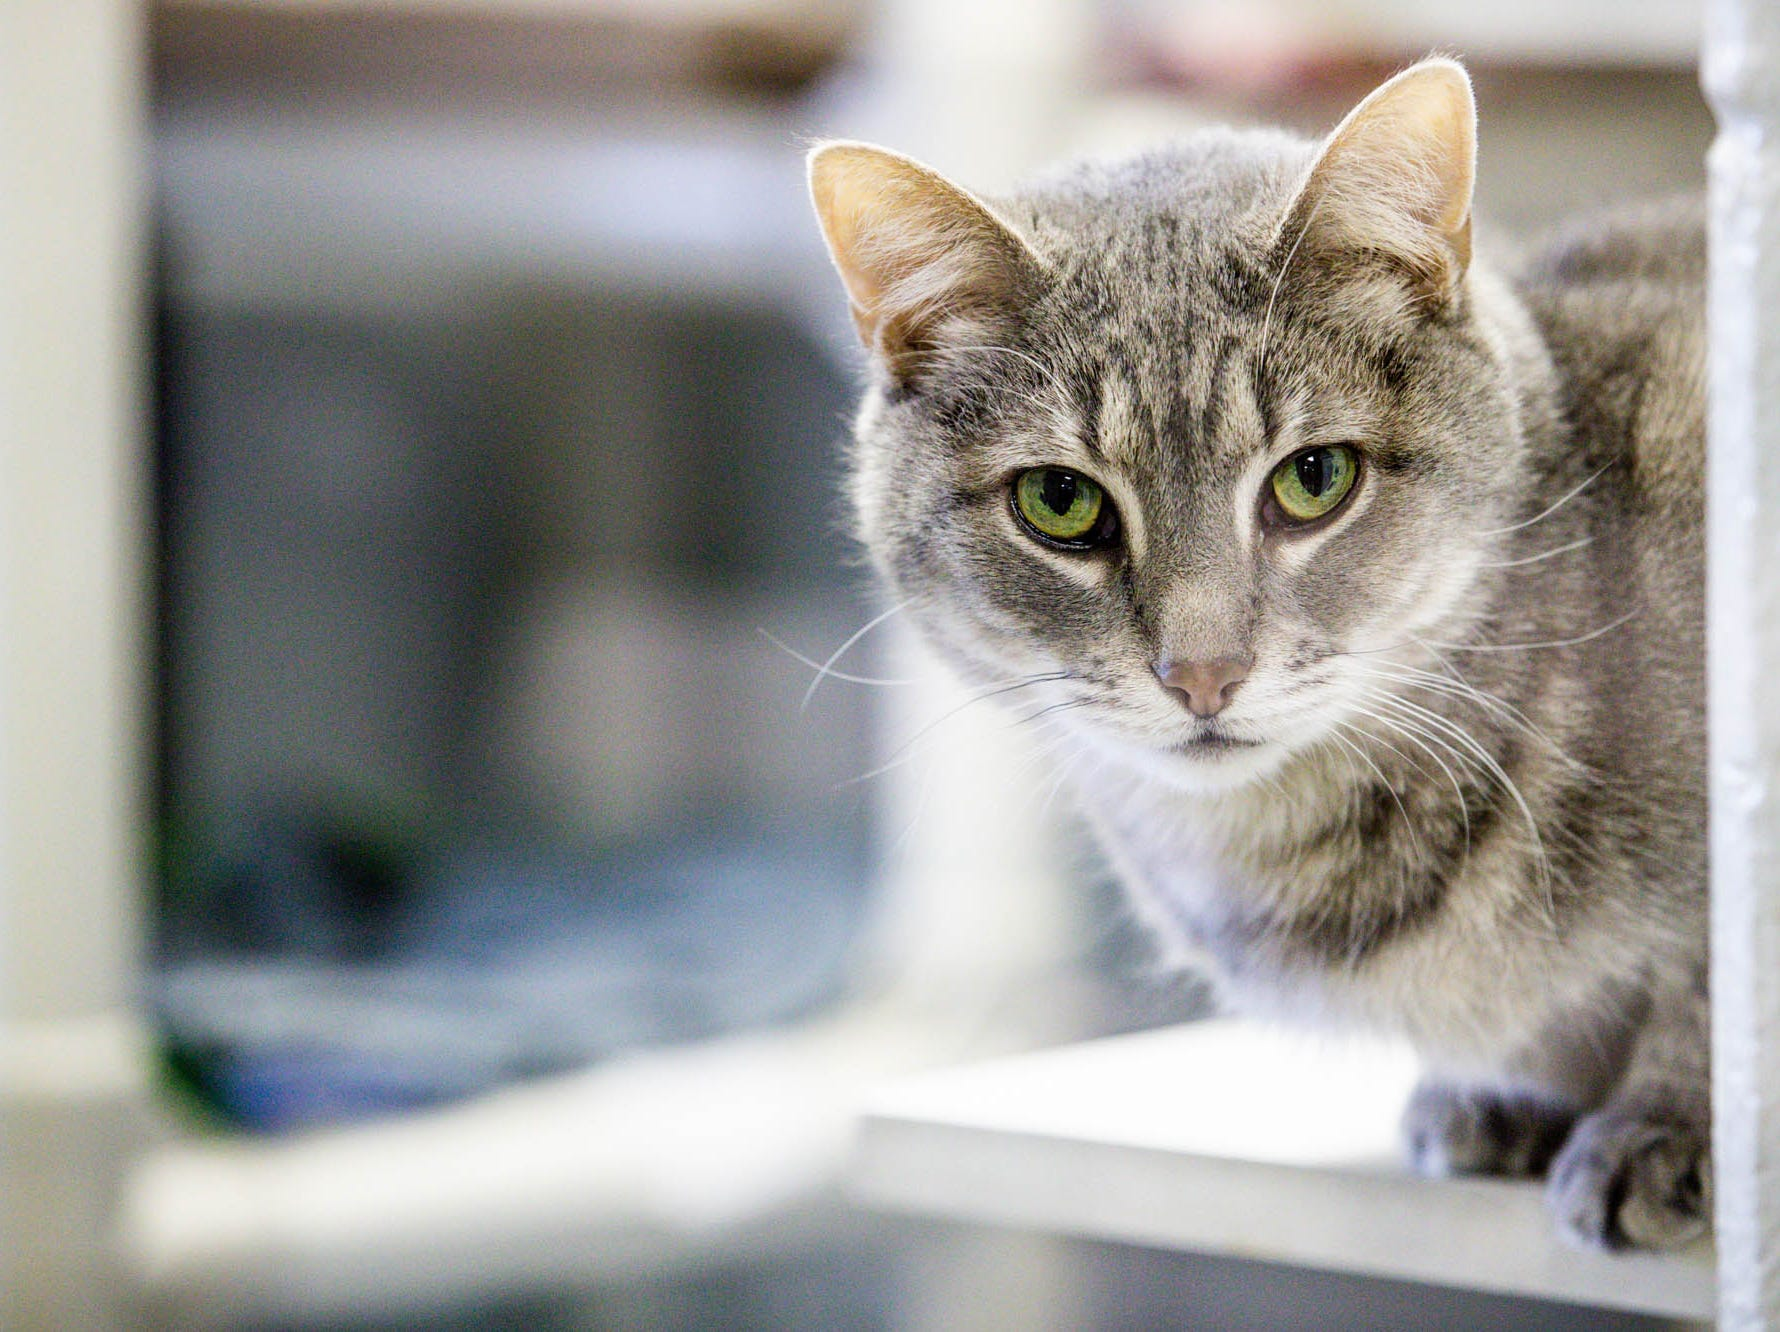 Mopuse, a cat up for adoption from Indy Humane watches the goings on during the Puppy and Kitten Baby Shower, on Sunday, March 10, 2019. The event educates families on Indy Humane's foster care program, as Fosters are needed in the spring during puppy and kitten season.